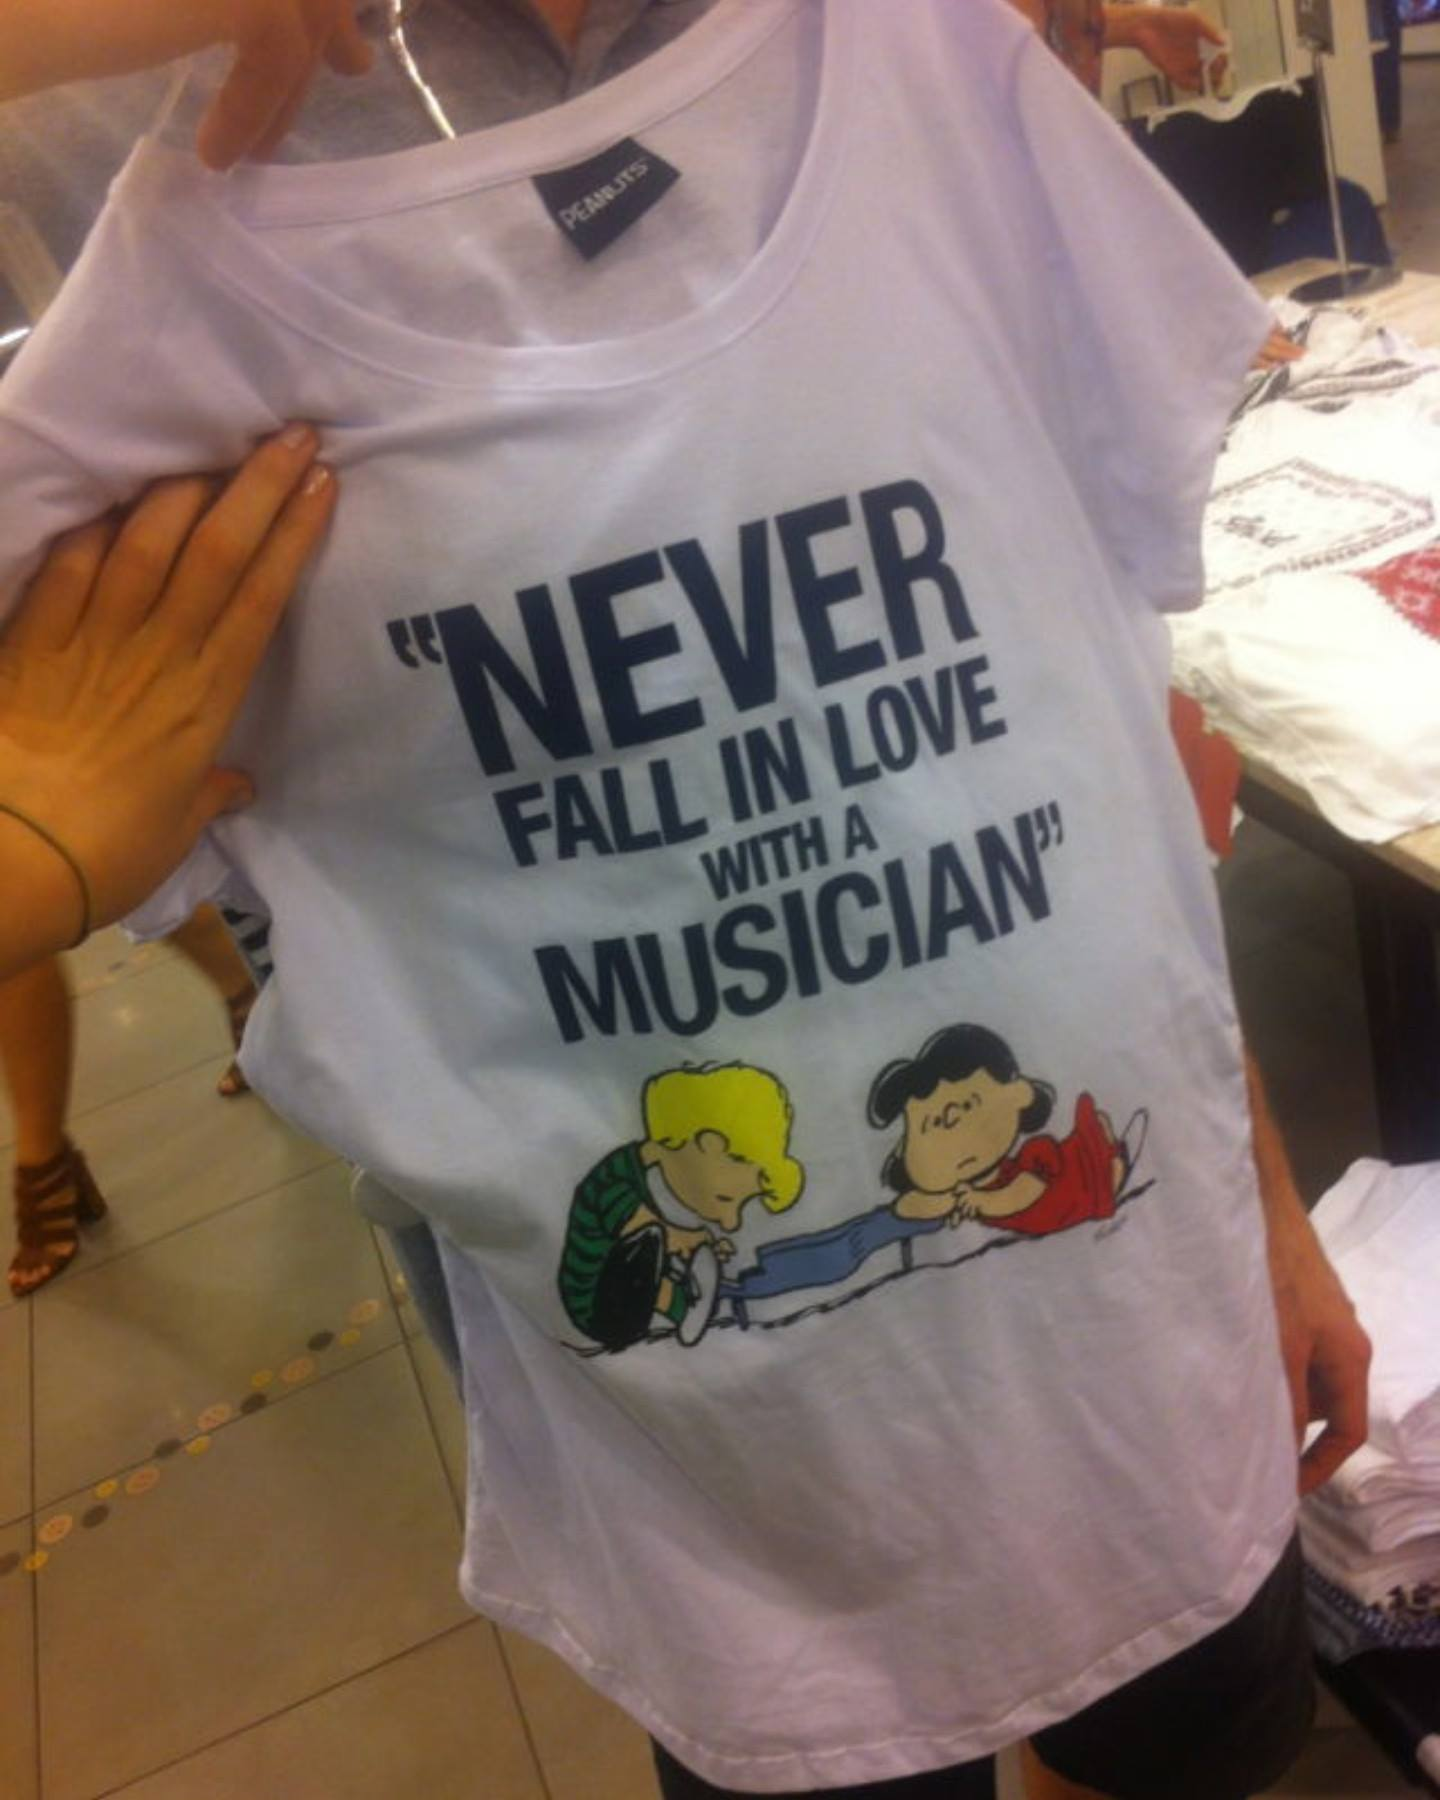 never fall in love with a musician t-shirt